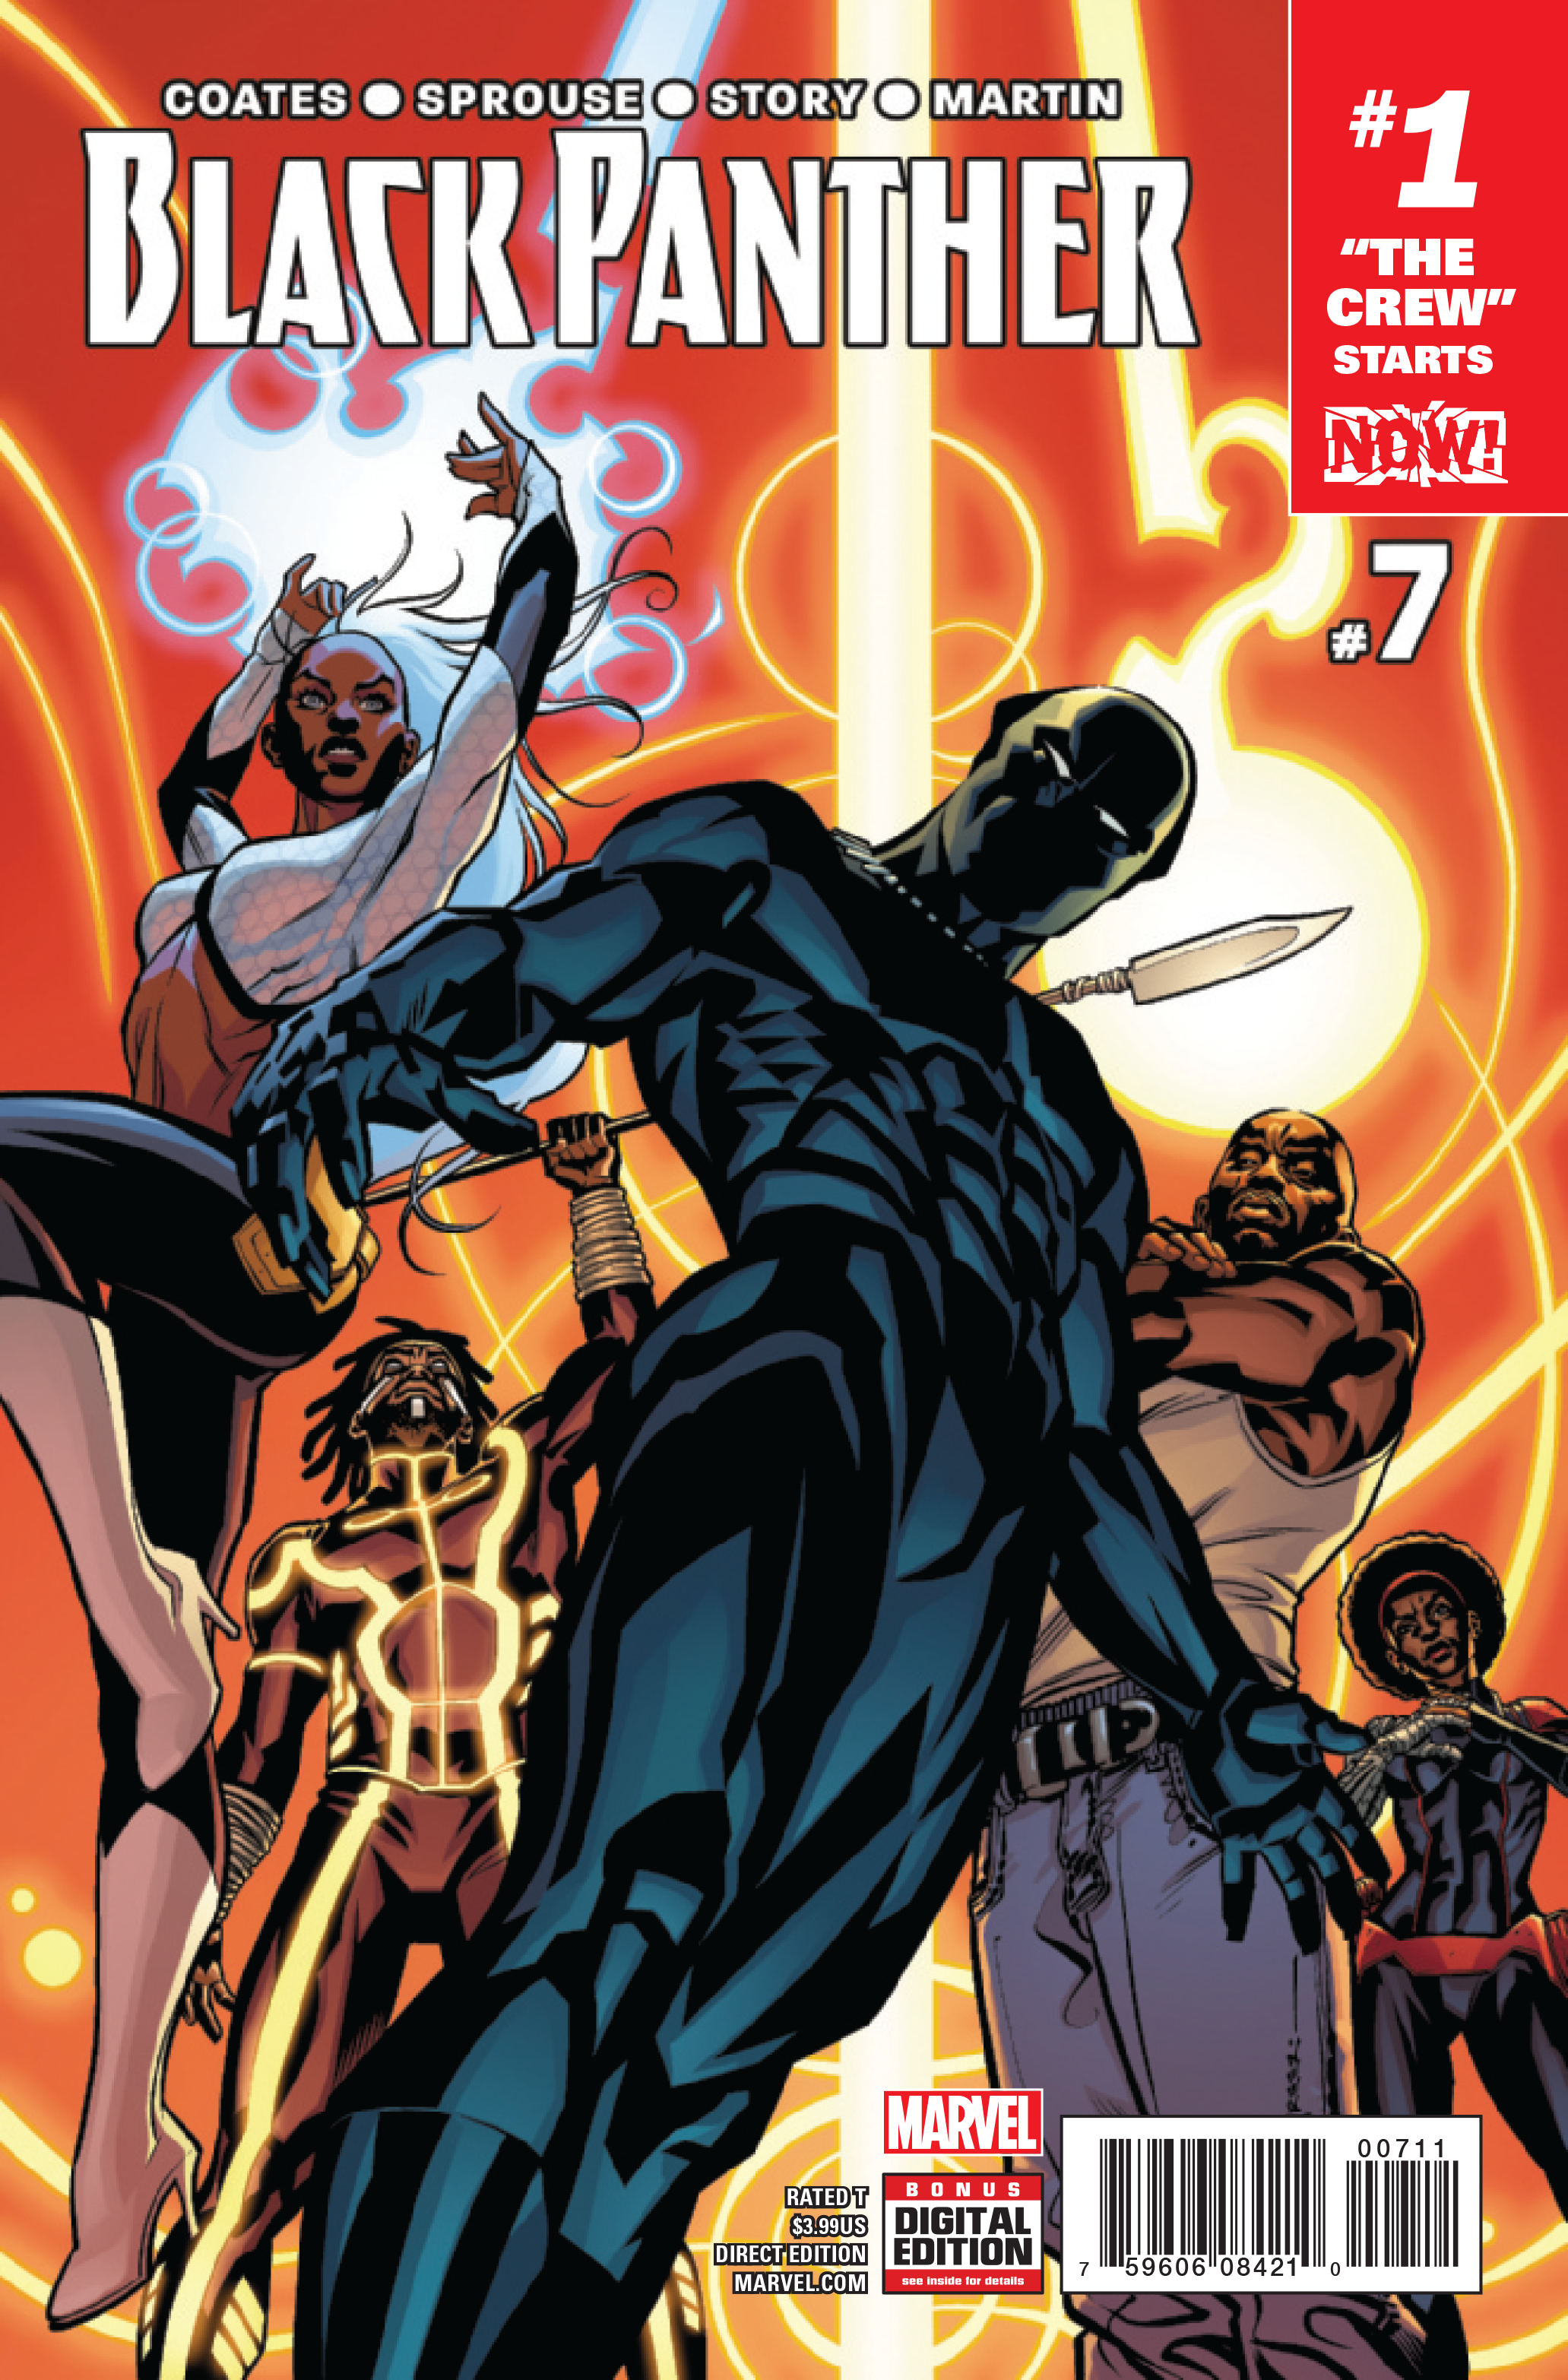 BLACK PANTHER #7 NOW